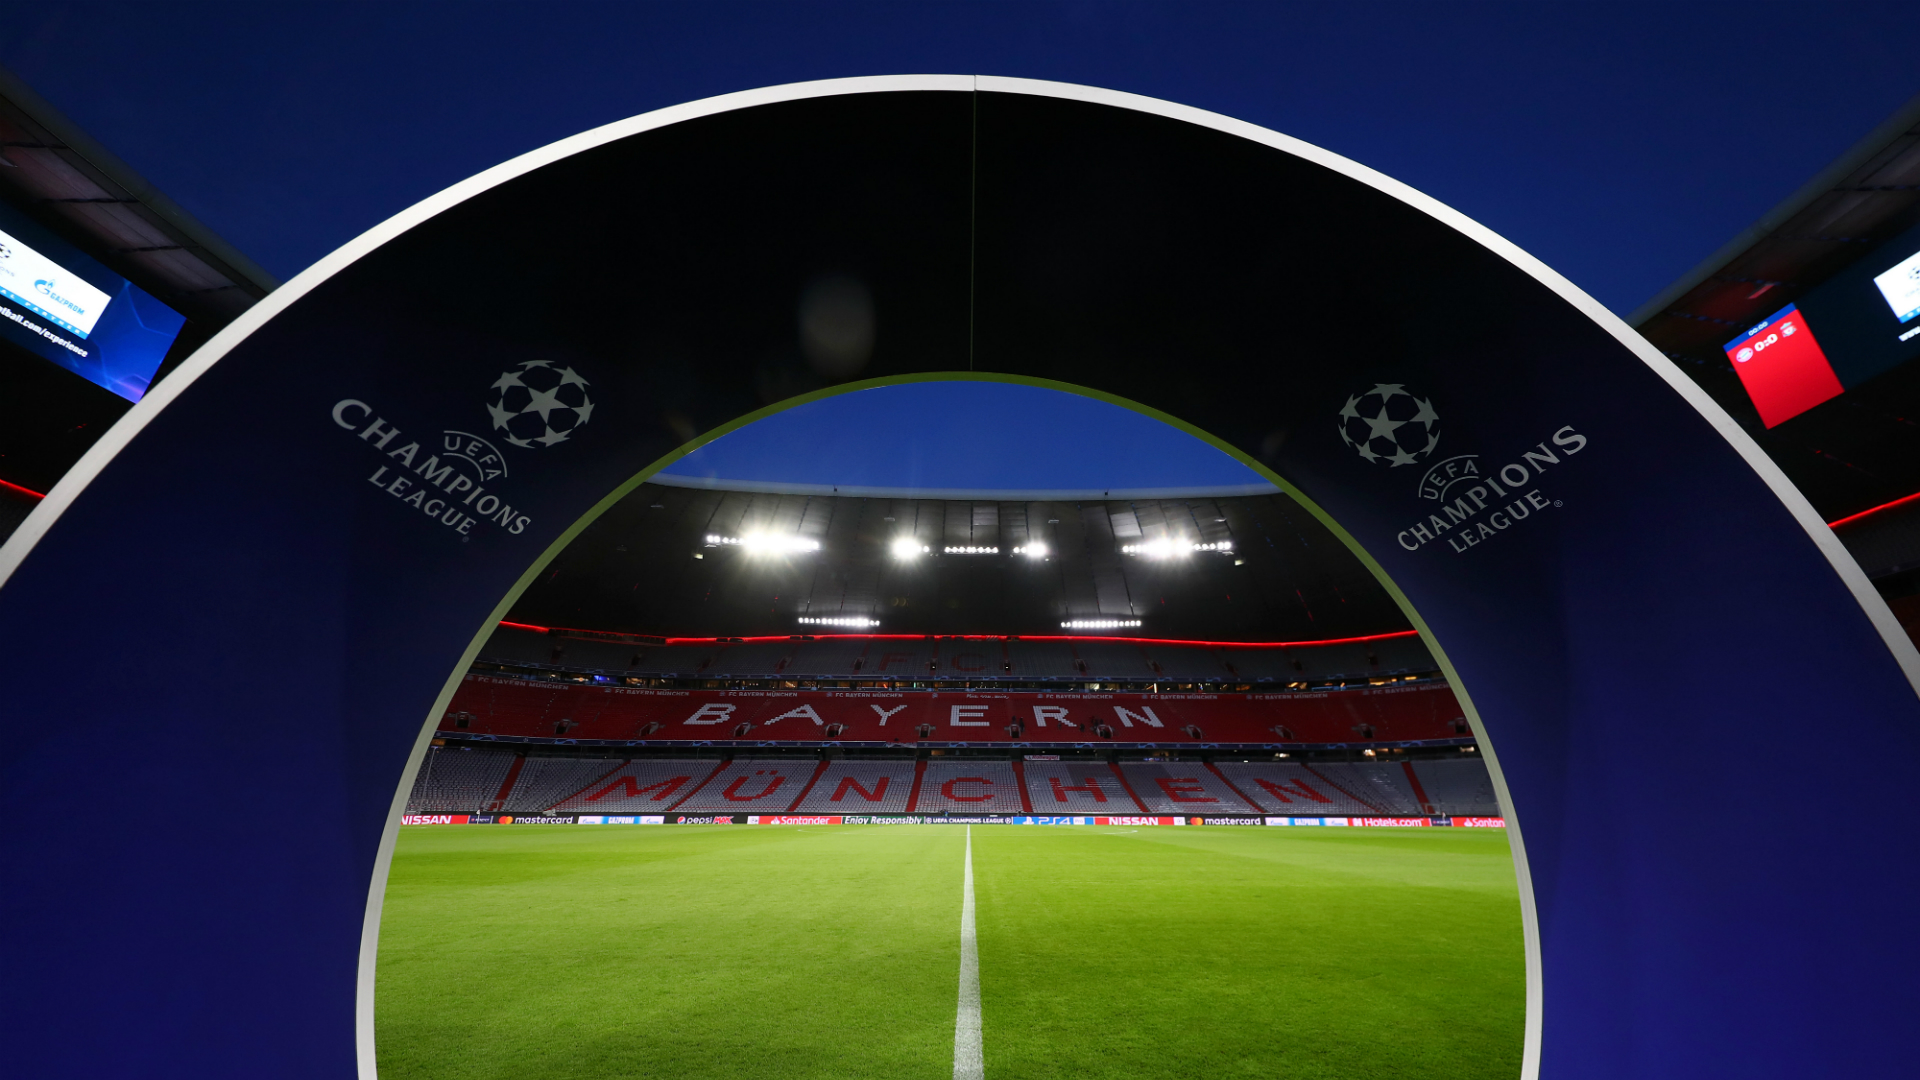 Bayern charged by UEFA over 'illicit' fan banner